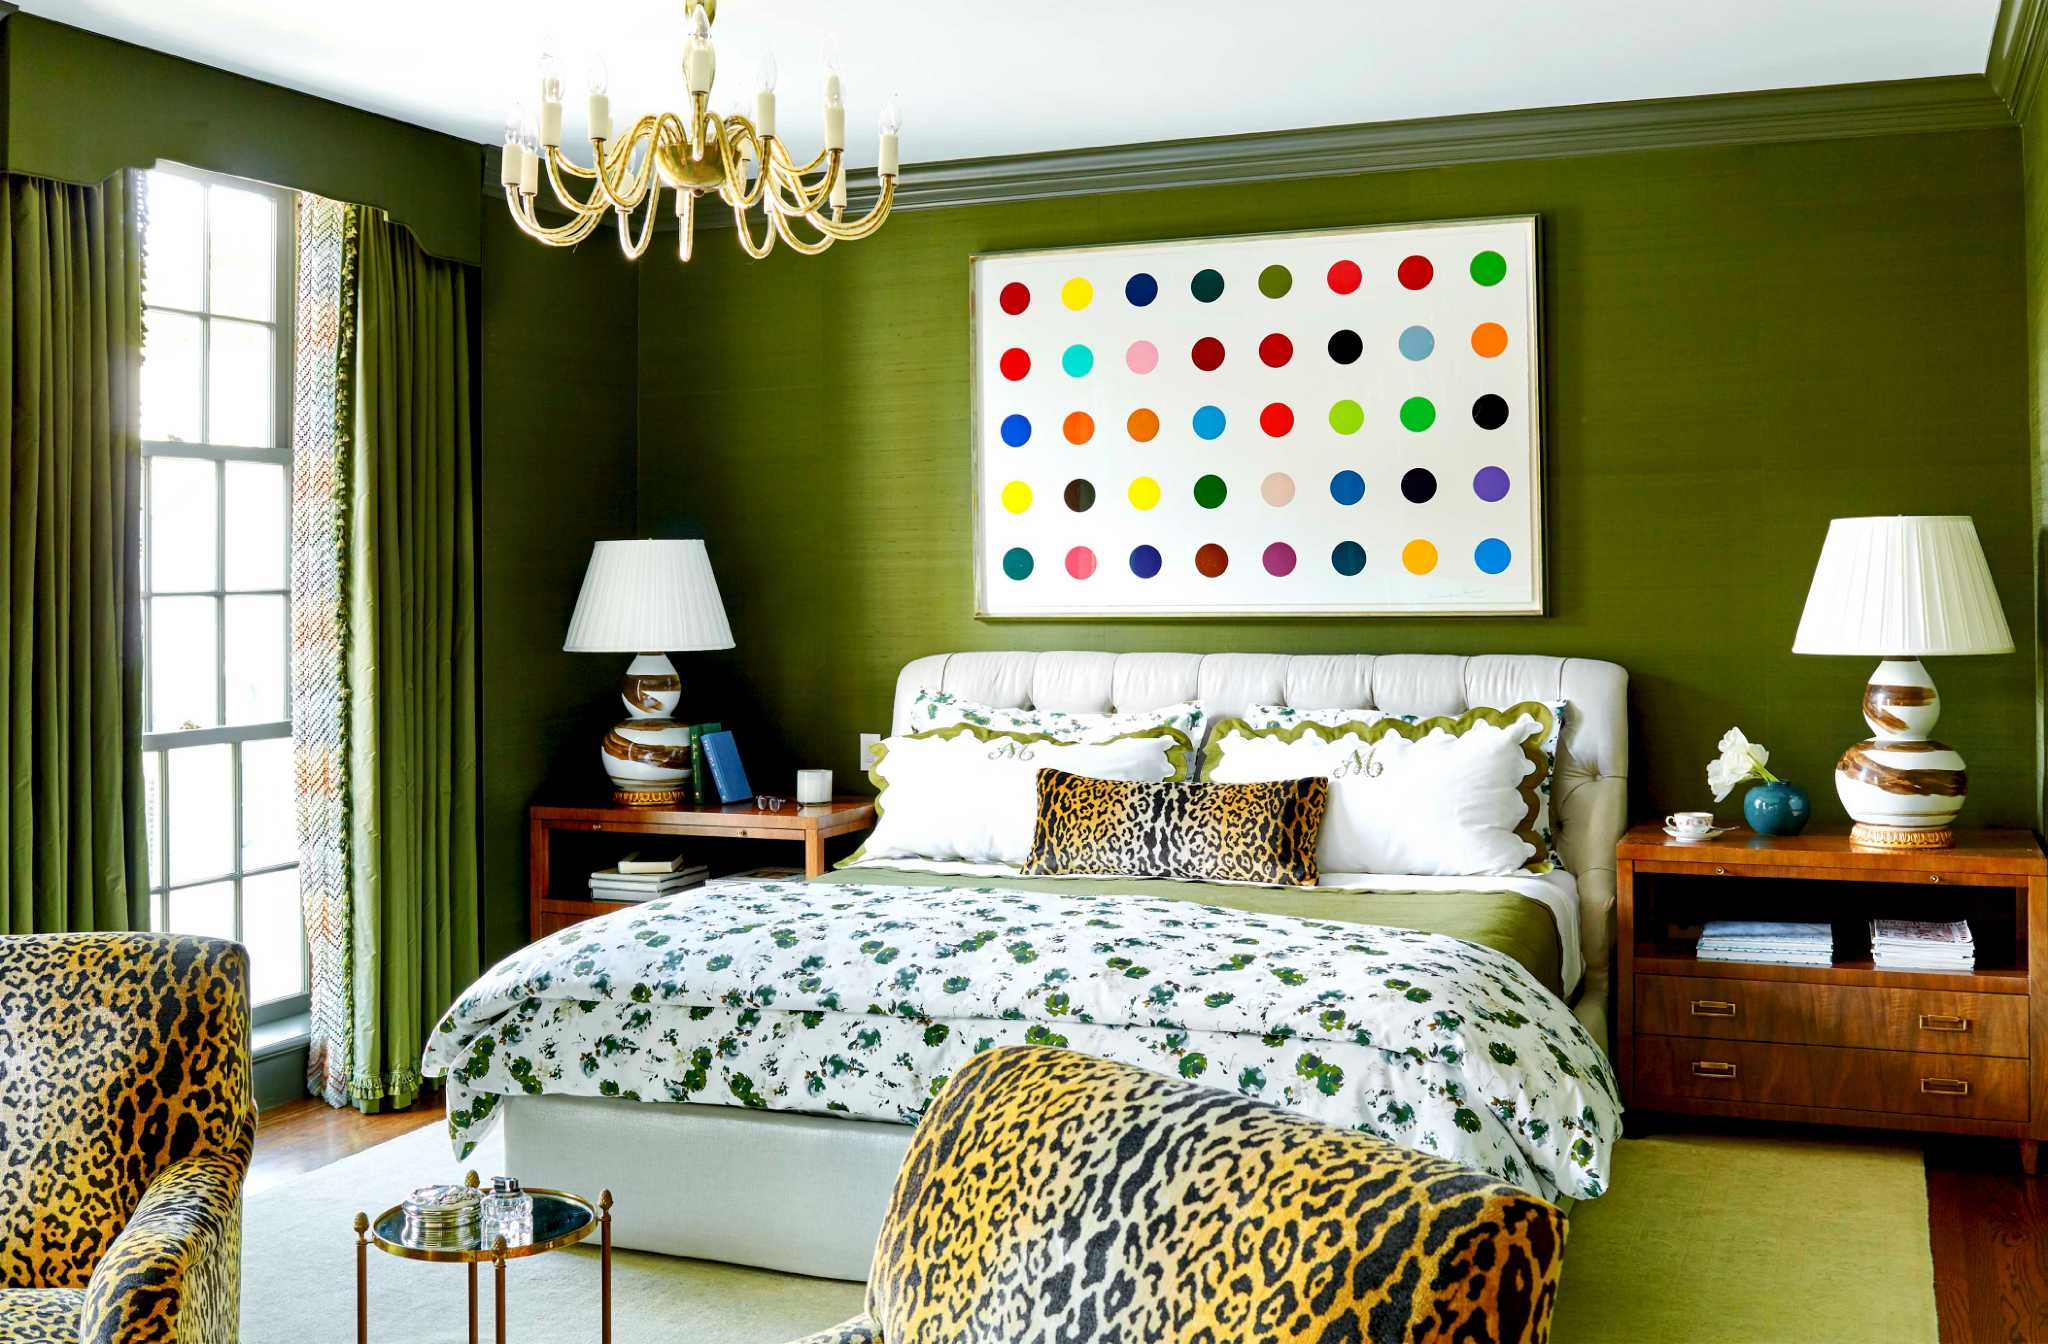 bedroom furniture makeover image19. houston retailer bailey mccarthyu0027s colorful river oaks home featured in house beautiful chronicle bedroom furniture makeover image19 n